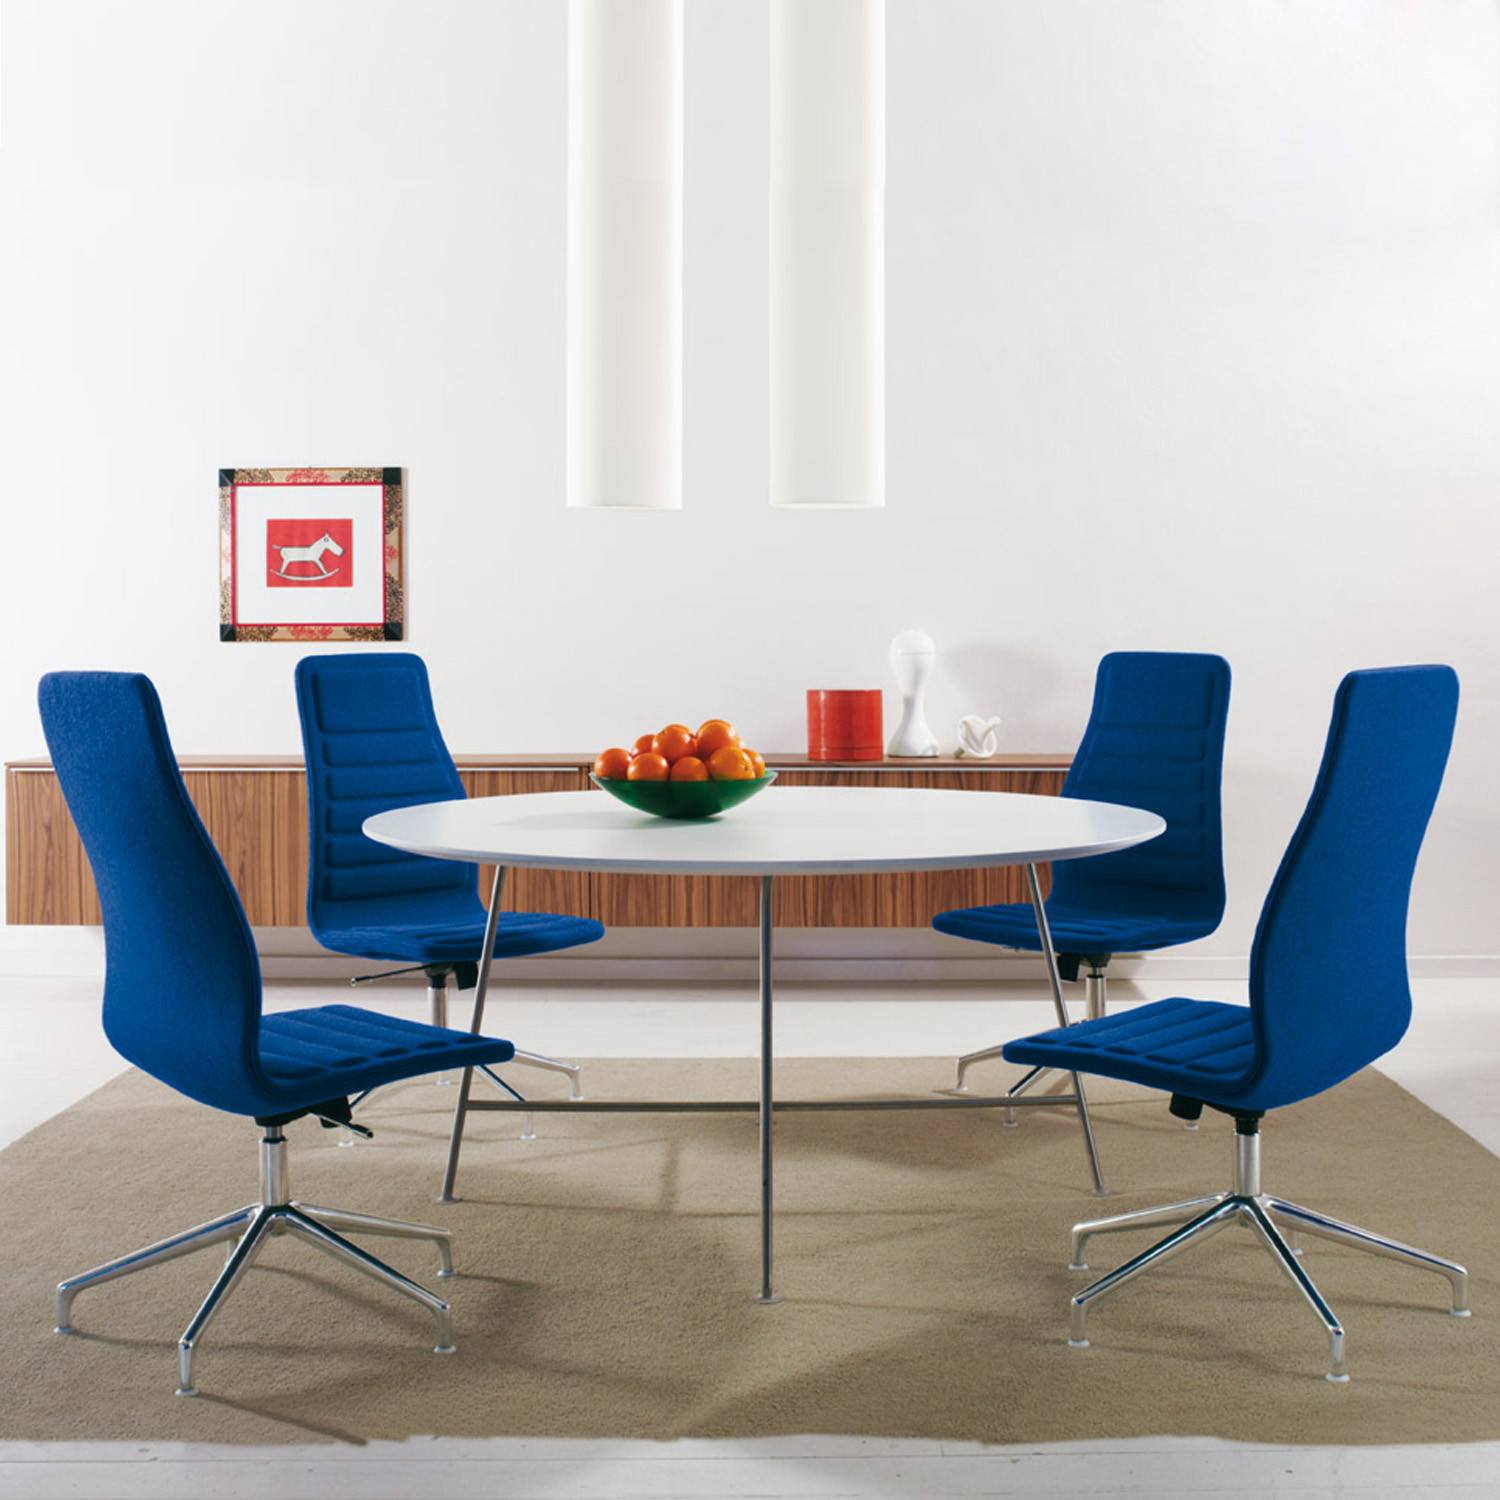 Lotus Meeting Armchairs by Cappellini